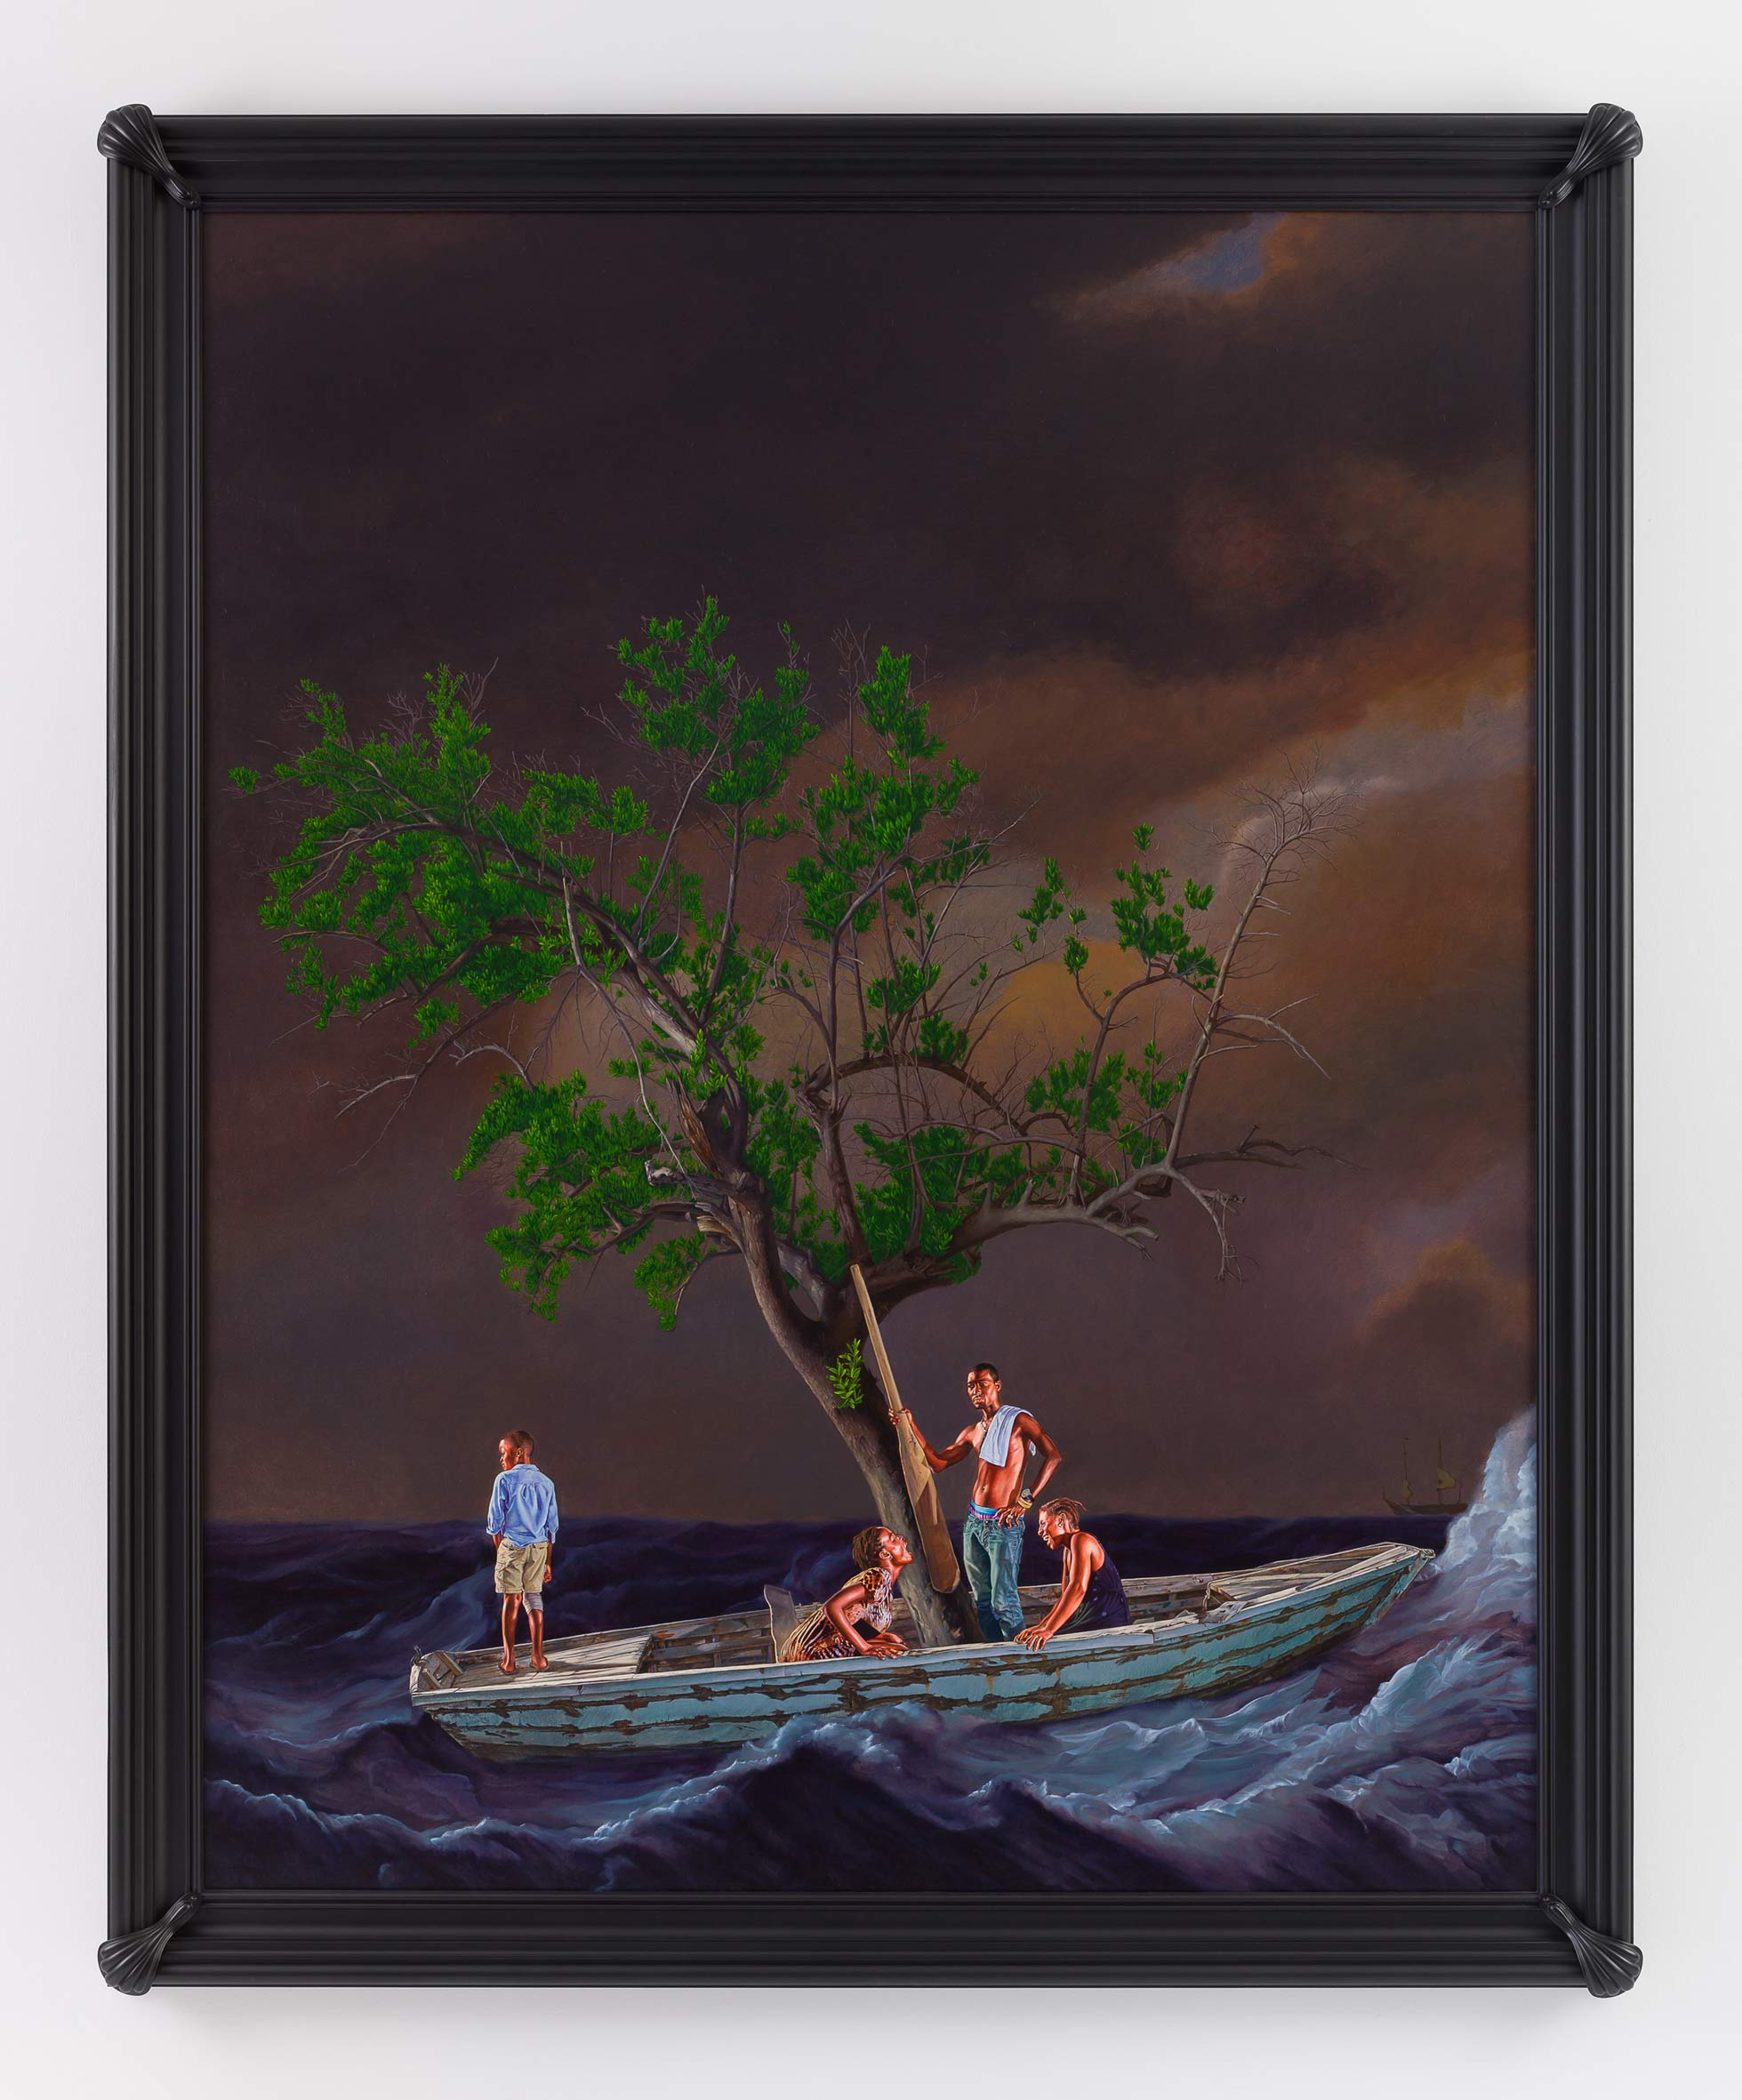 Image of Ship of Fools © Kehinde Wiley